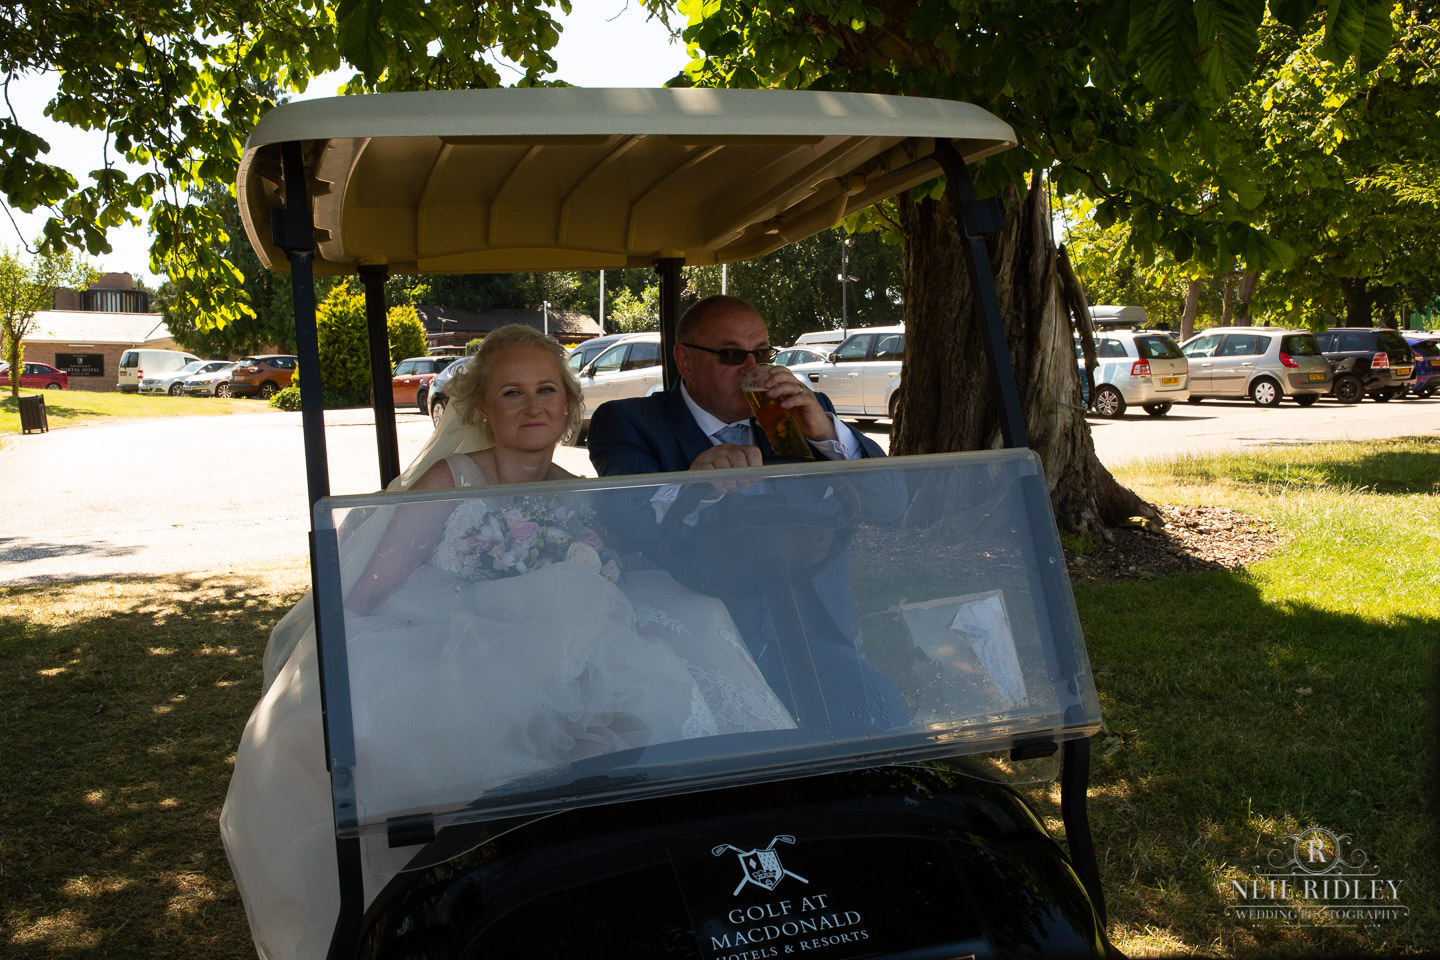 Bride and Groom in golf buggy at Macdonald Portal Hotel, Tarporley